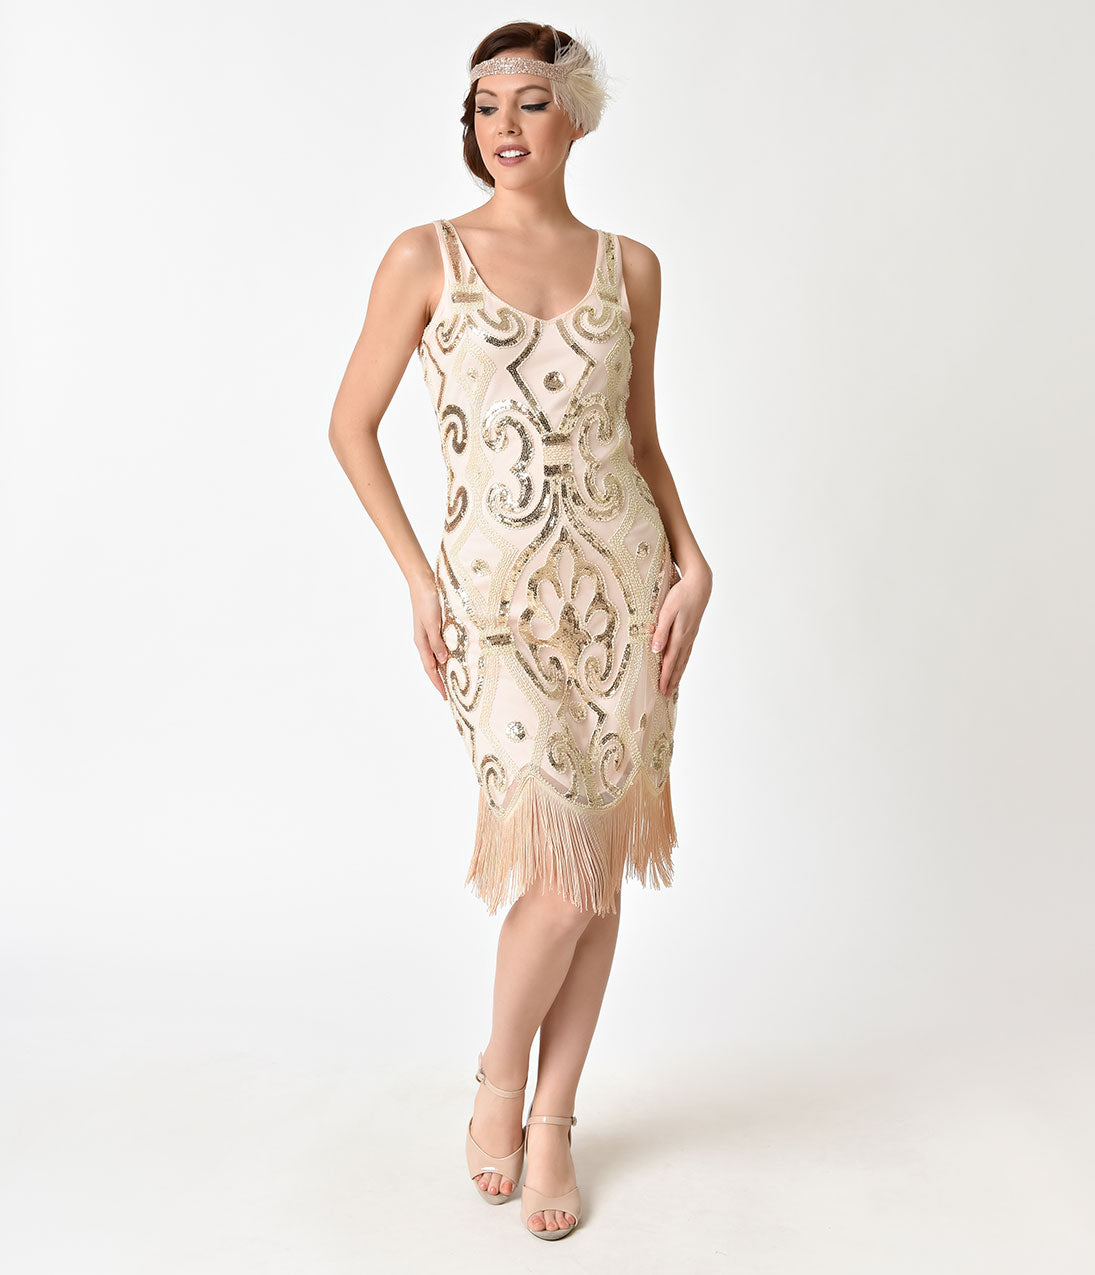 1920s Style Dresses, Flapper Dresses Unique Vintage Peach  Gold Sequin Arielle Fringe Flapper Dress $98.00 AT vintagedancer.com